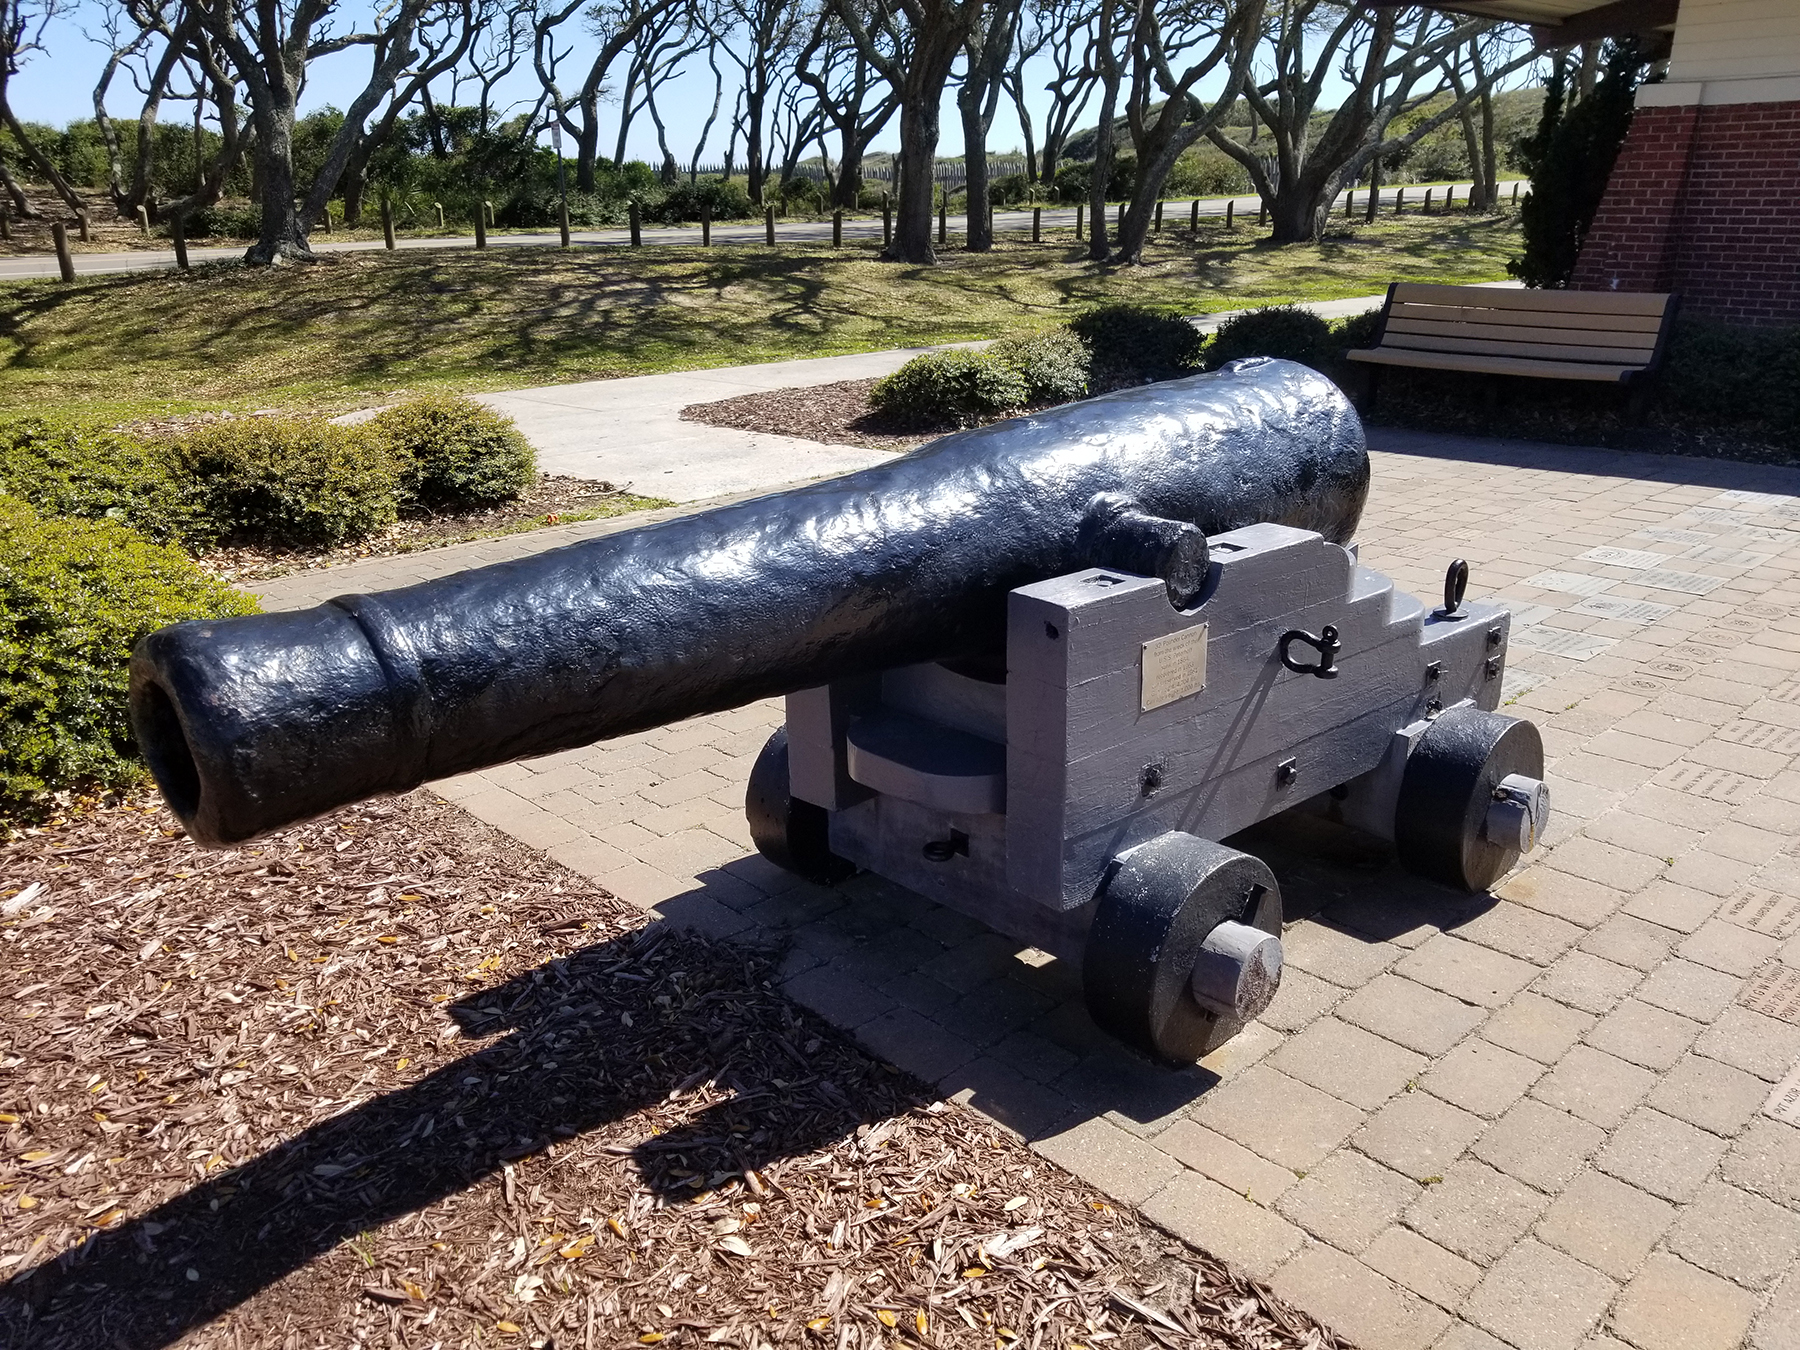 32-pounder smoothbore cannon in front of the Fort Fisher Visitors Center